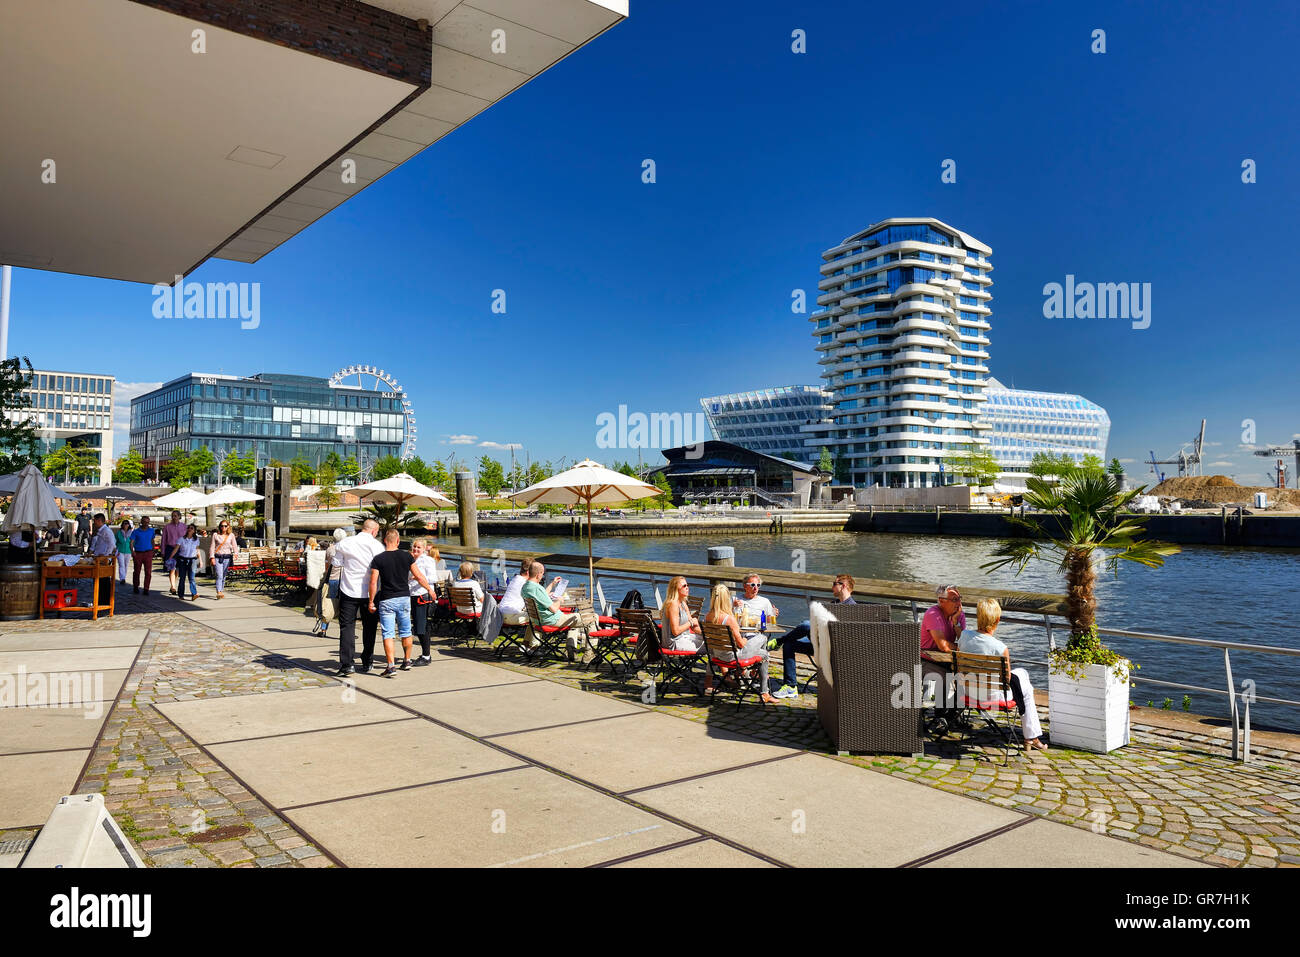 Grasbrook Harbor And Marco Polo Residence Tower In Hamburg, Germany - Stock Image